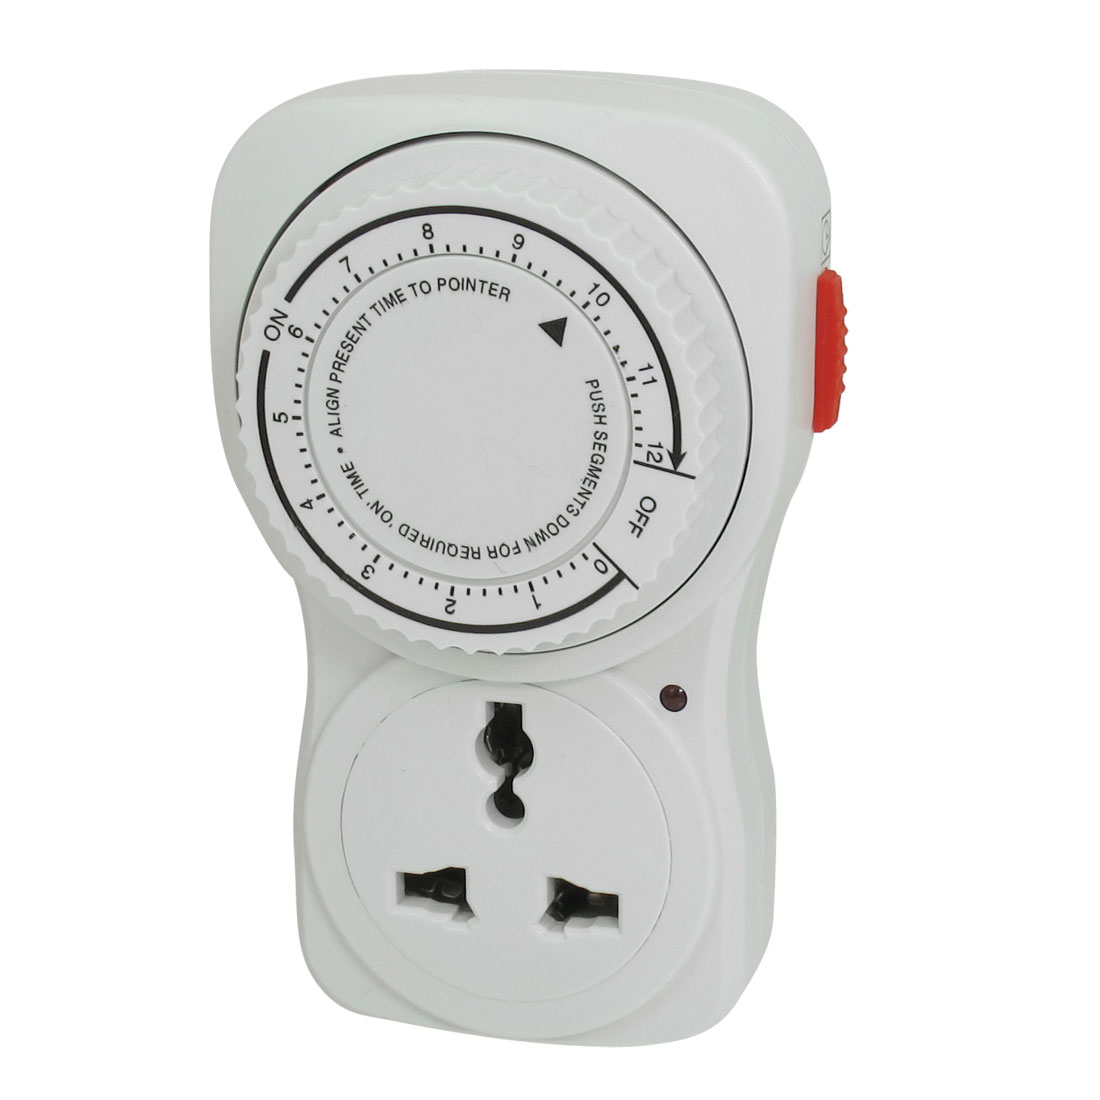 AC 220V-250V 2200W 10A Maximum Load 12 Hour Plug in Programmable Timer